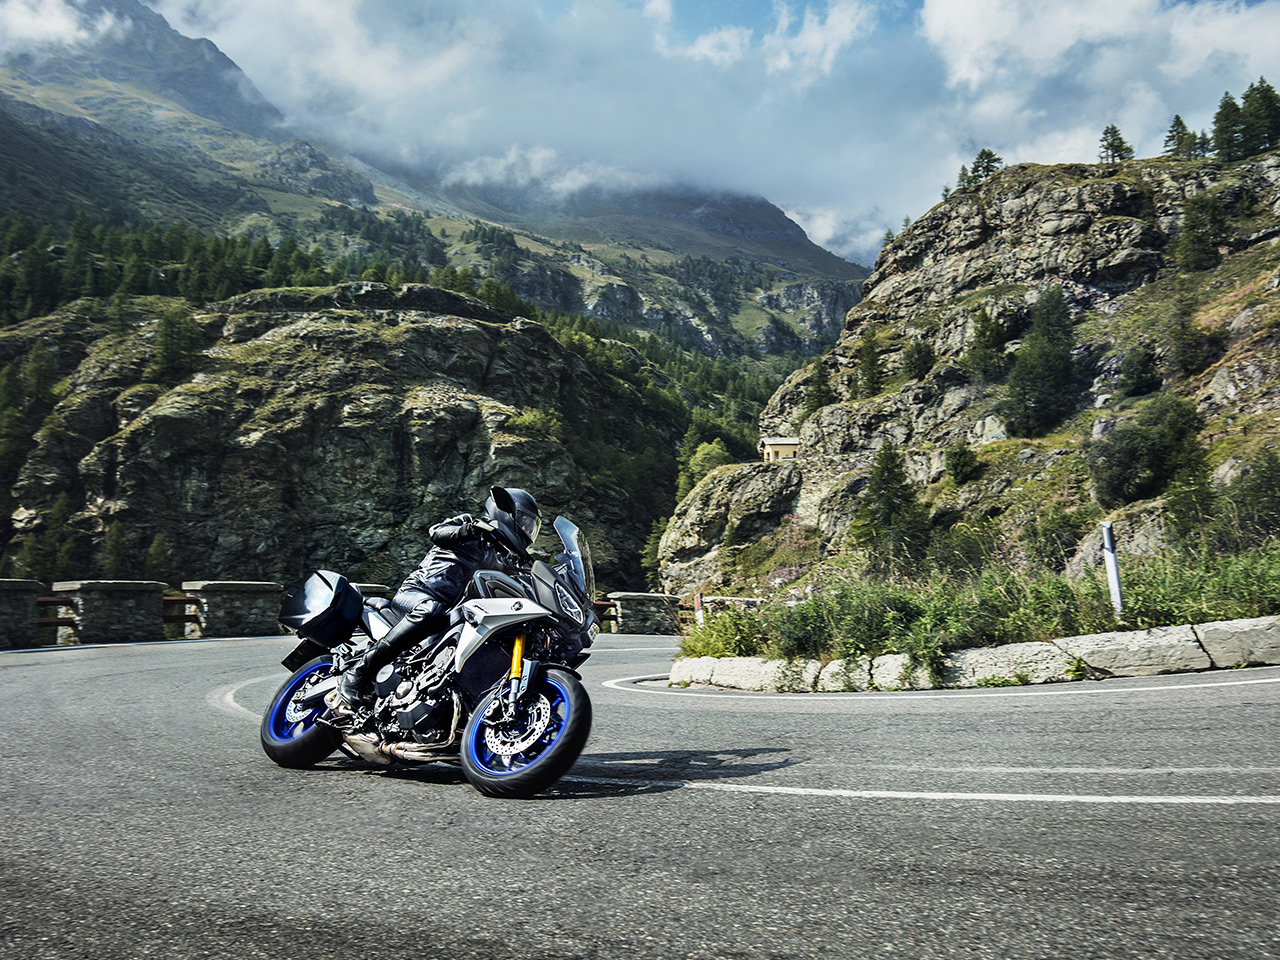 Yamaha Tracer 900 GT motorcycle riding on the hill road